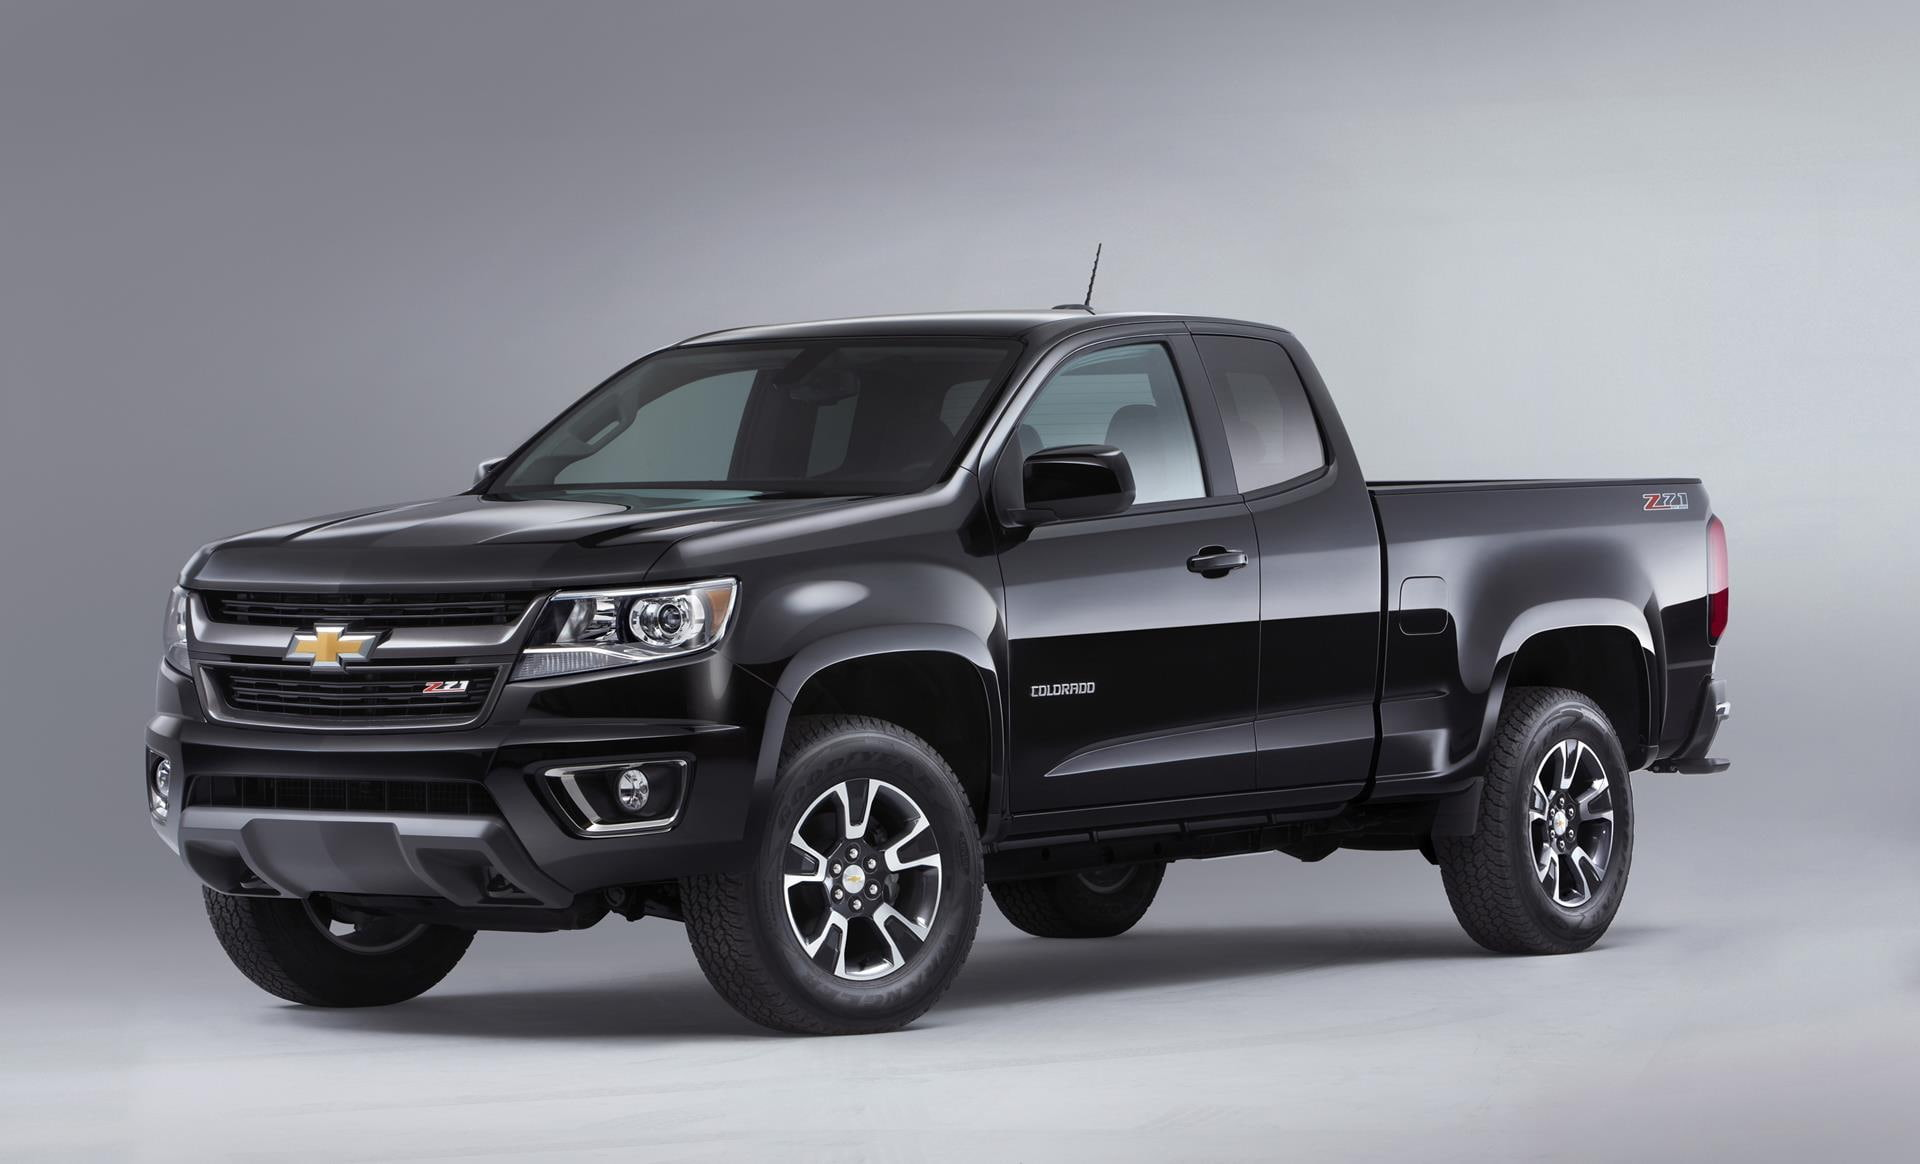 1920x1164 Chevrolet Colorado Duramax Diesel, 2016 chevy colorado pickup